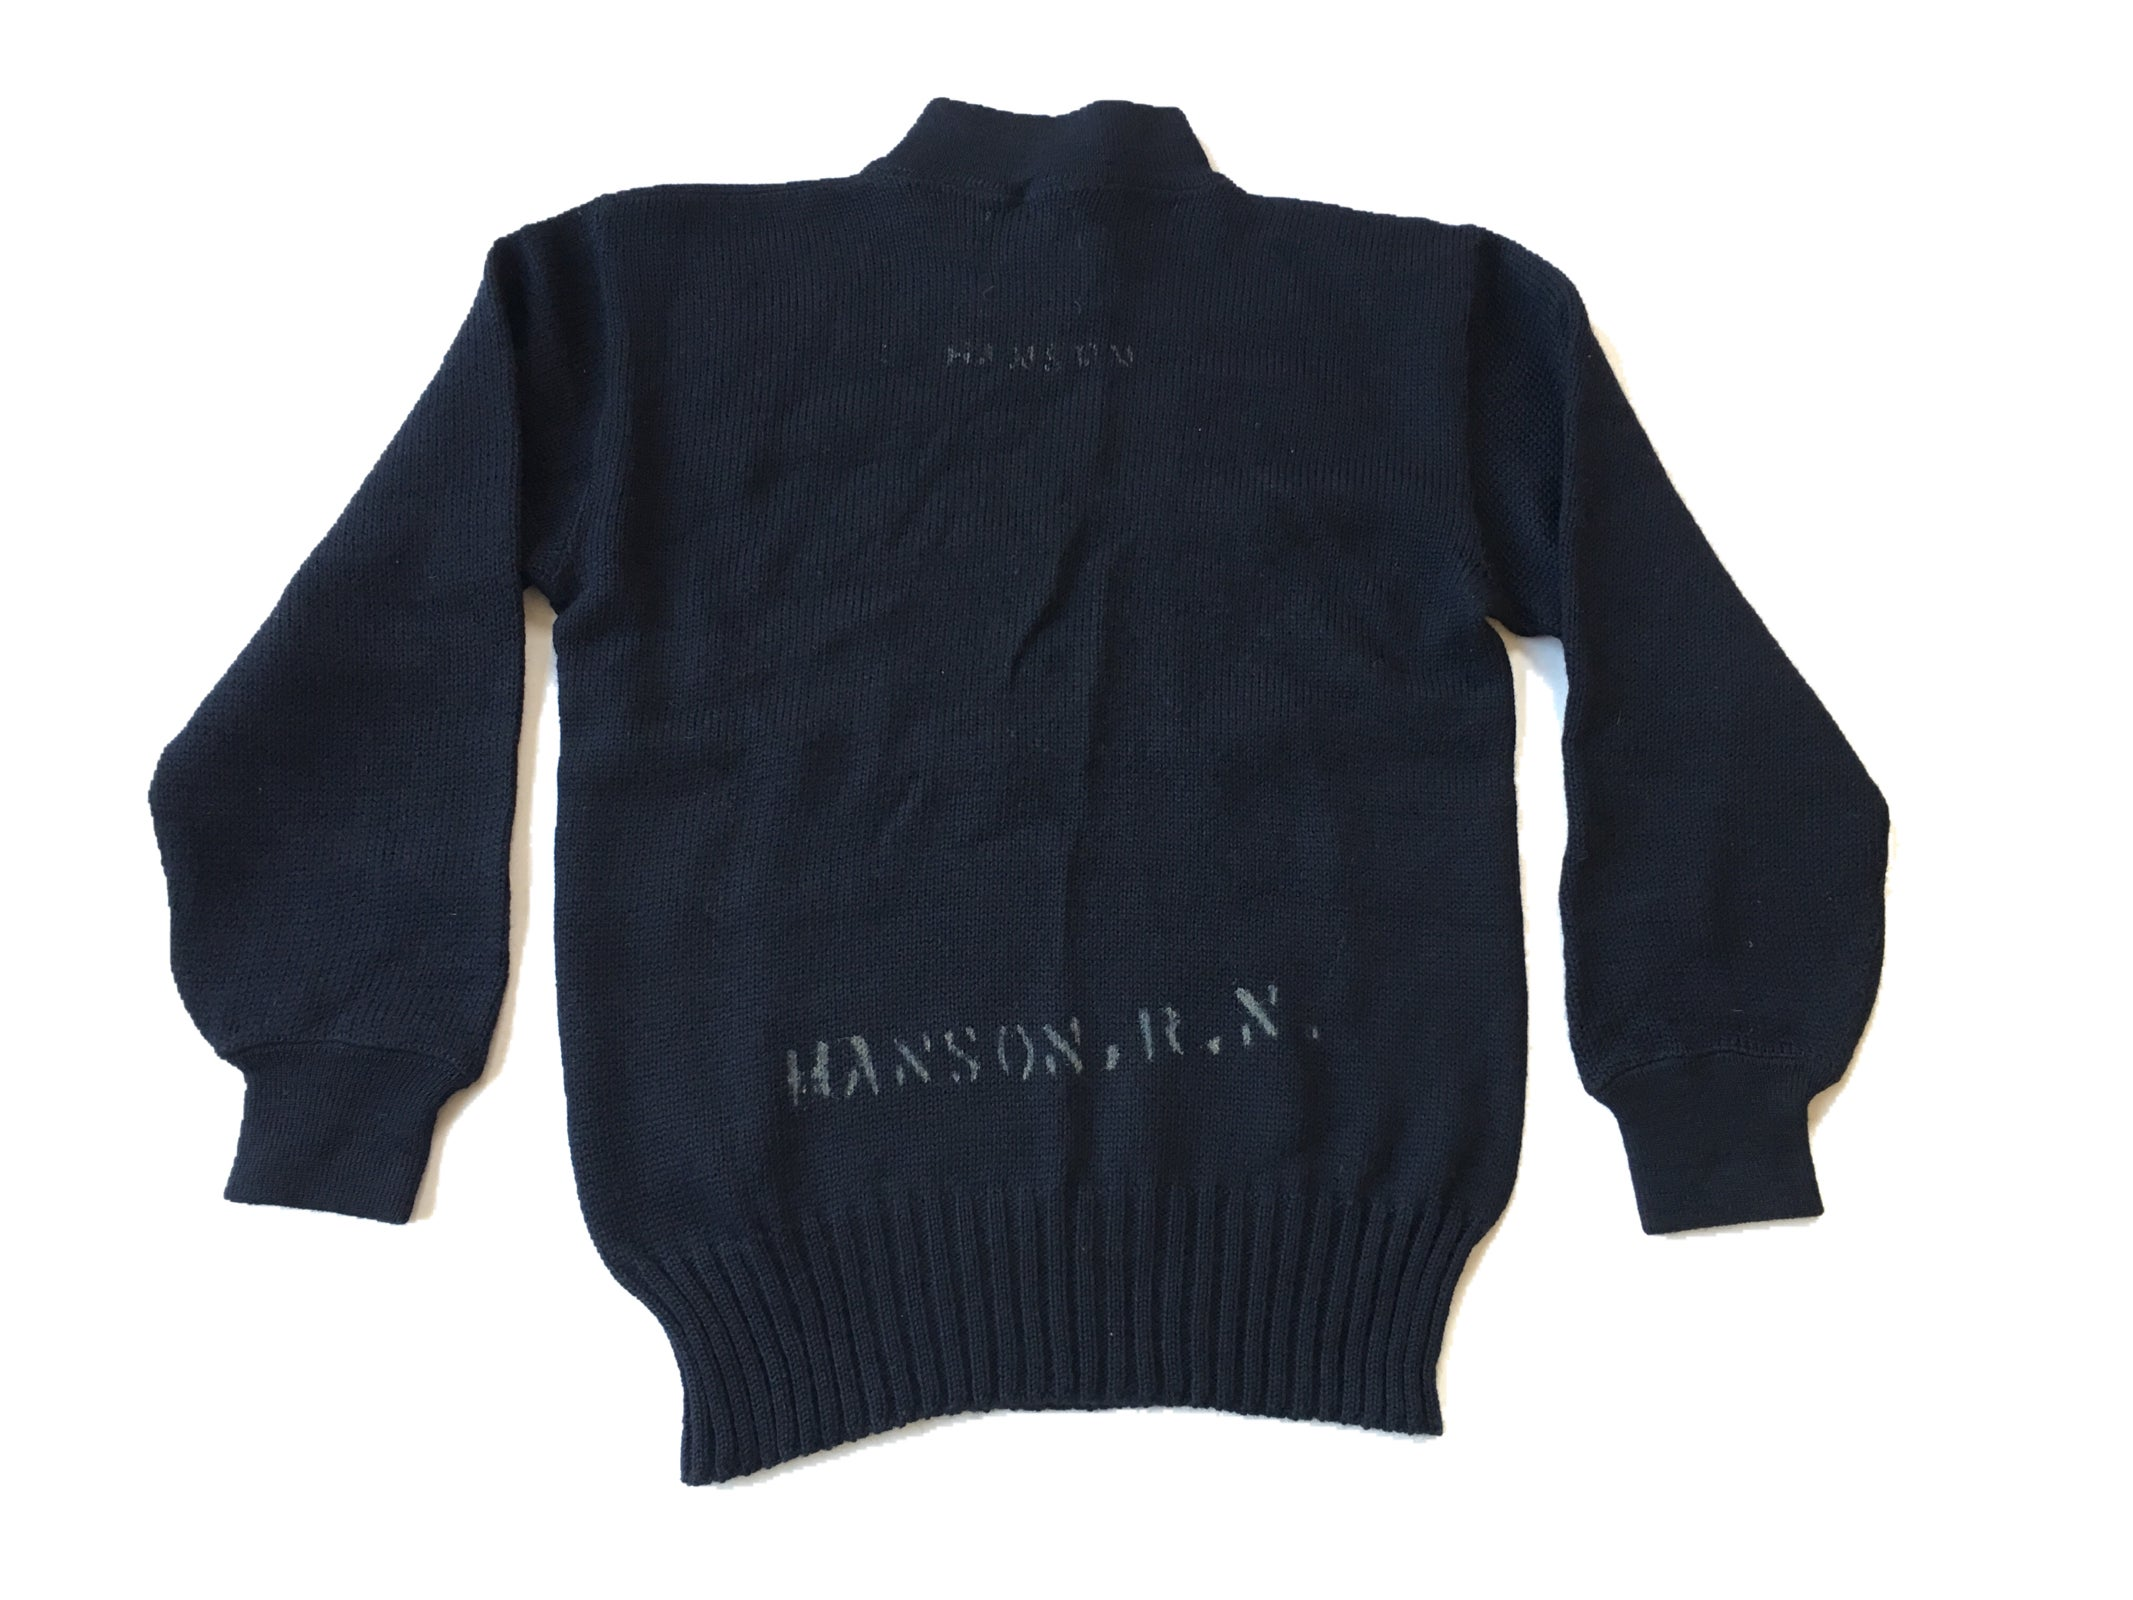 Image of WWII US NAVY SAILOR WOOL SWEATER